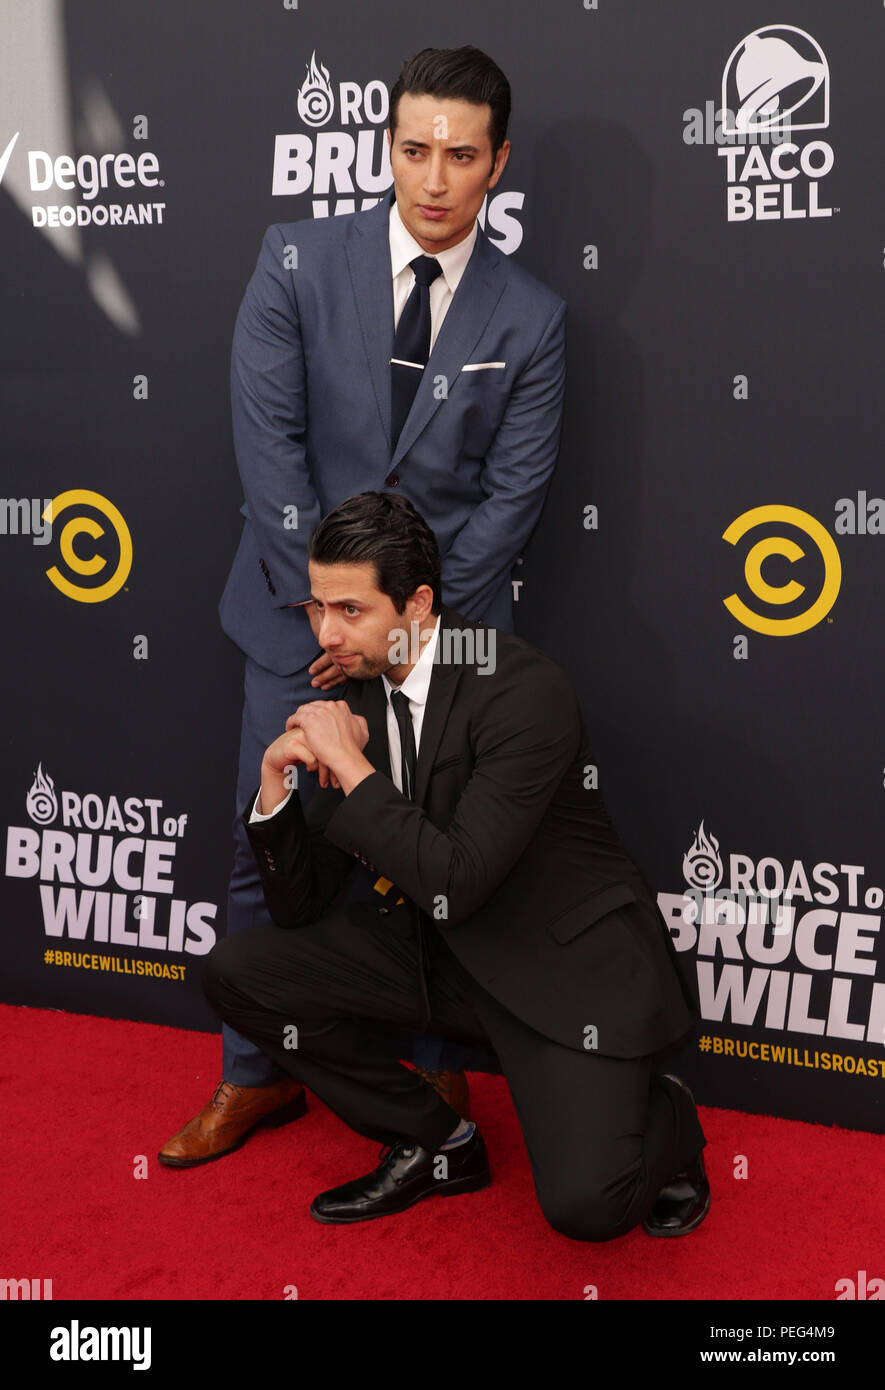 Celebrities Attend Comedy Central Roast Of Bruce Willis At The Hollywood Palladium Featuring Aristotle